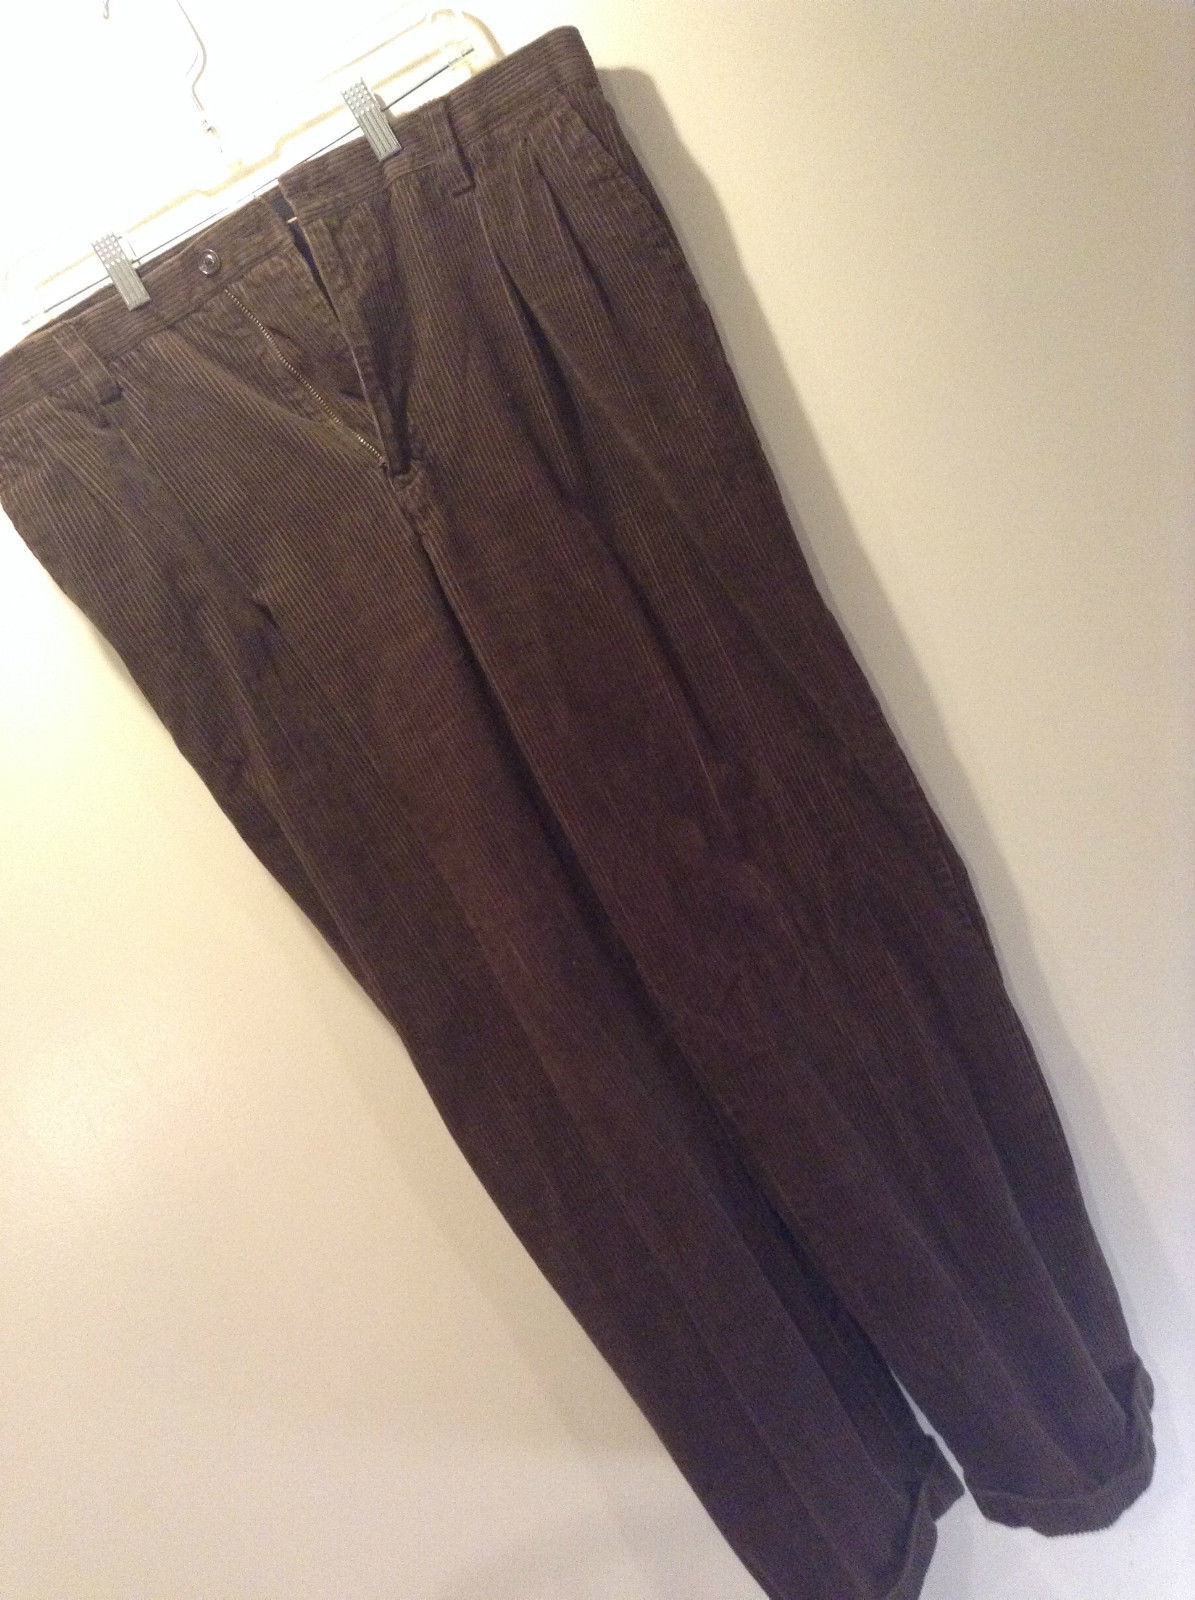 Croft and Barrow Dark Brown Casual Corduroy Pants Size 34 by 30 Pockets